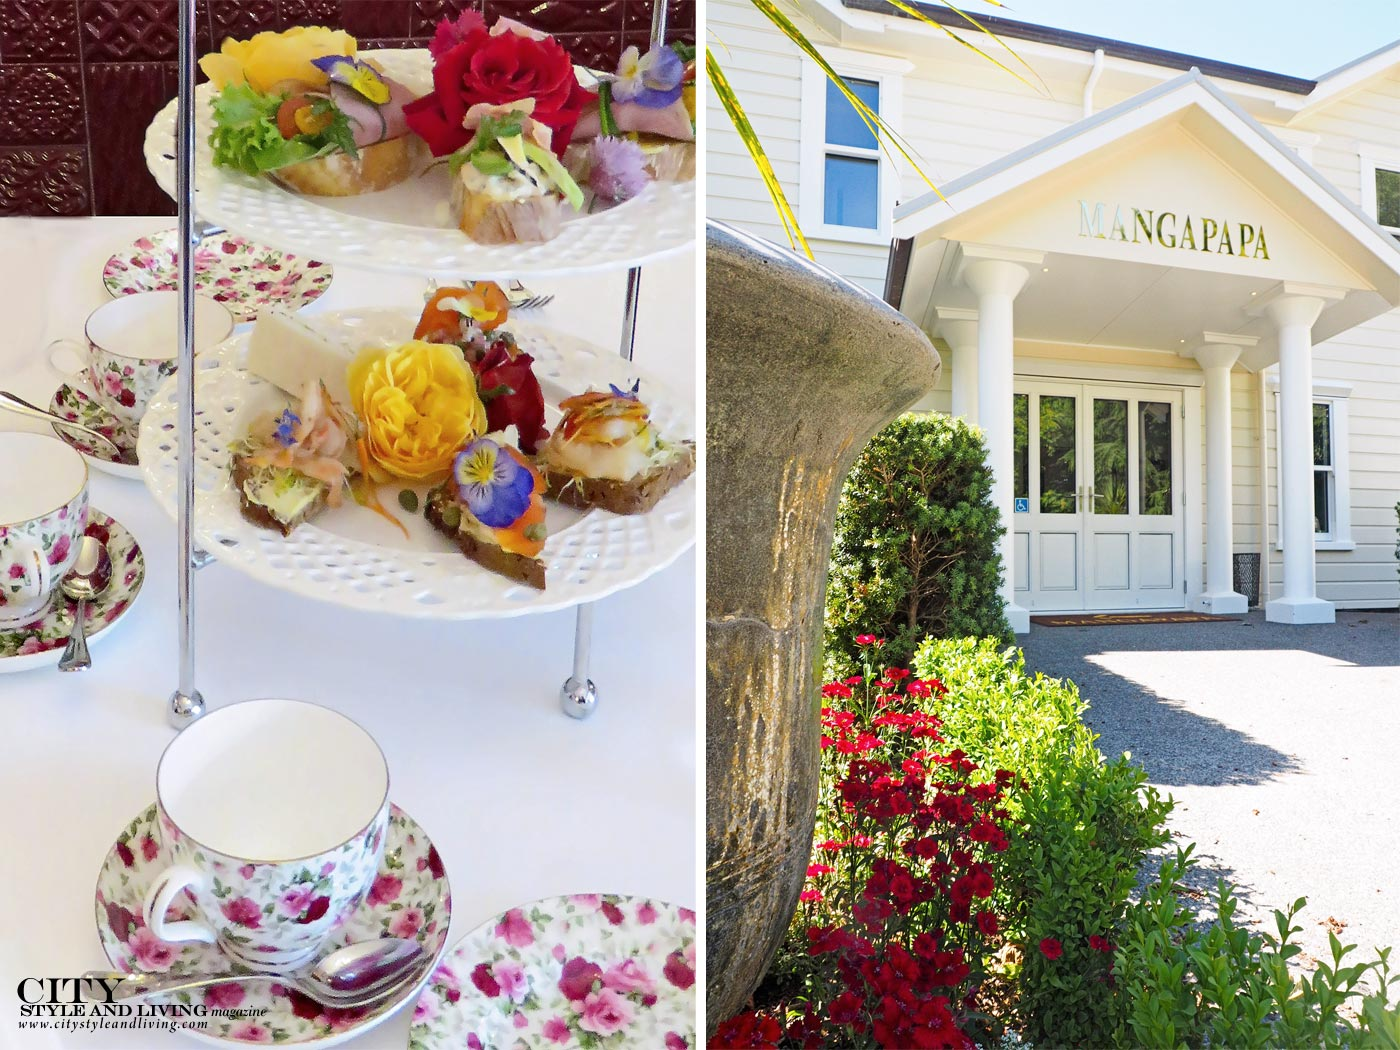 City Style and Living Magazine Mangapapa Hotel Napier New Zealand North Island High Tea, exterior of hotel